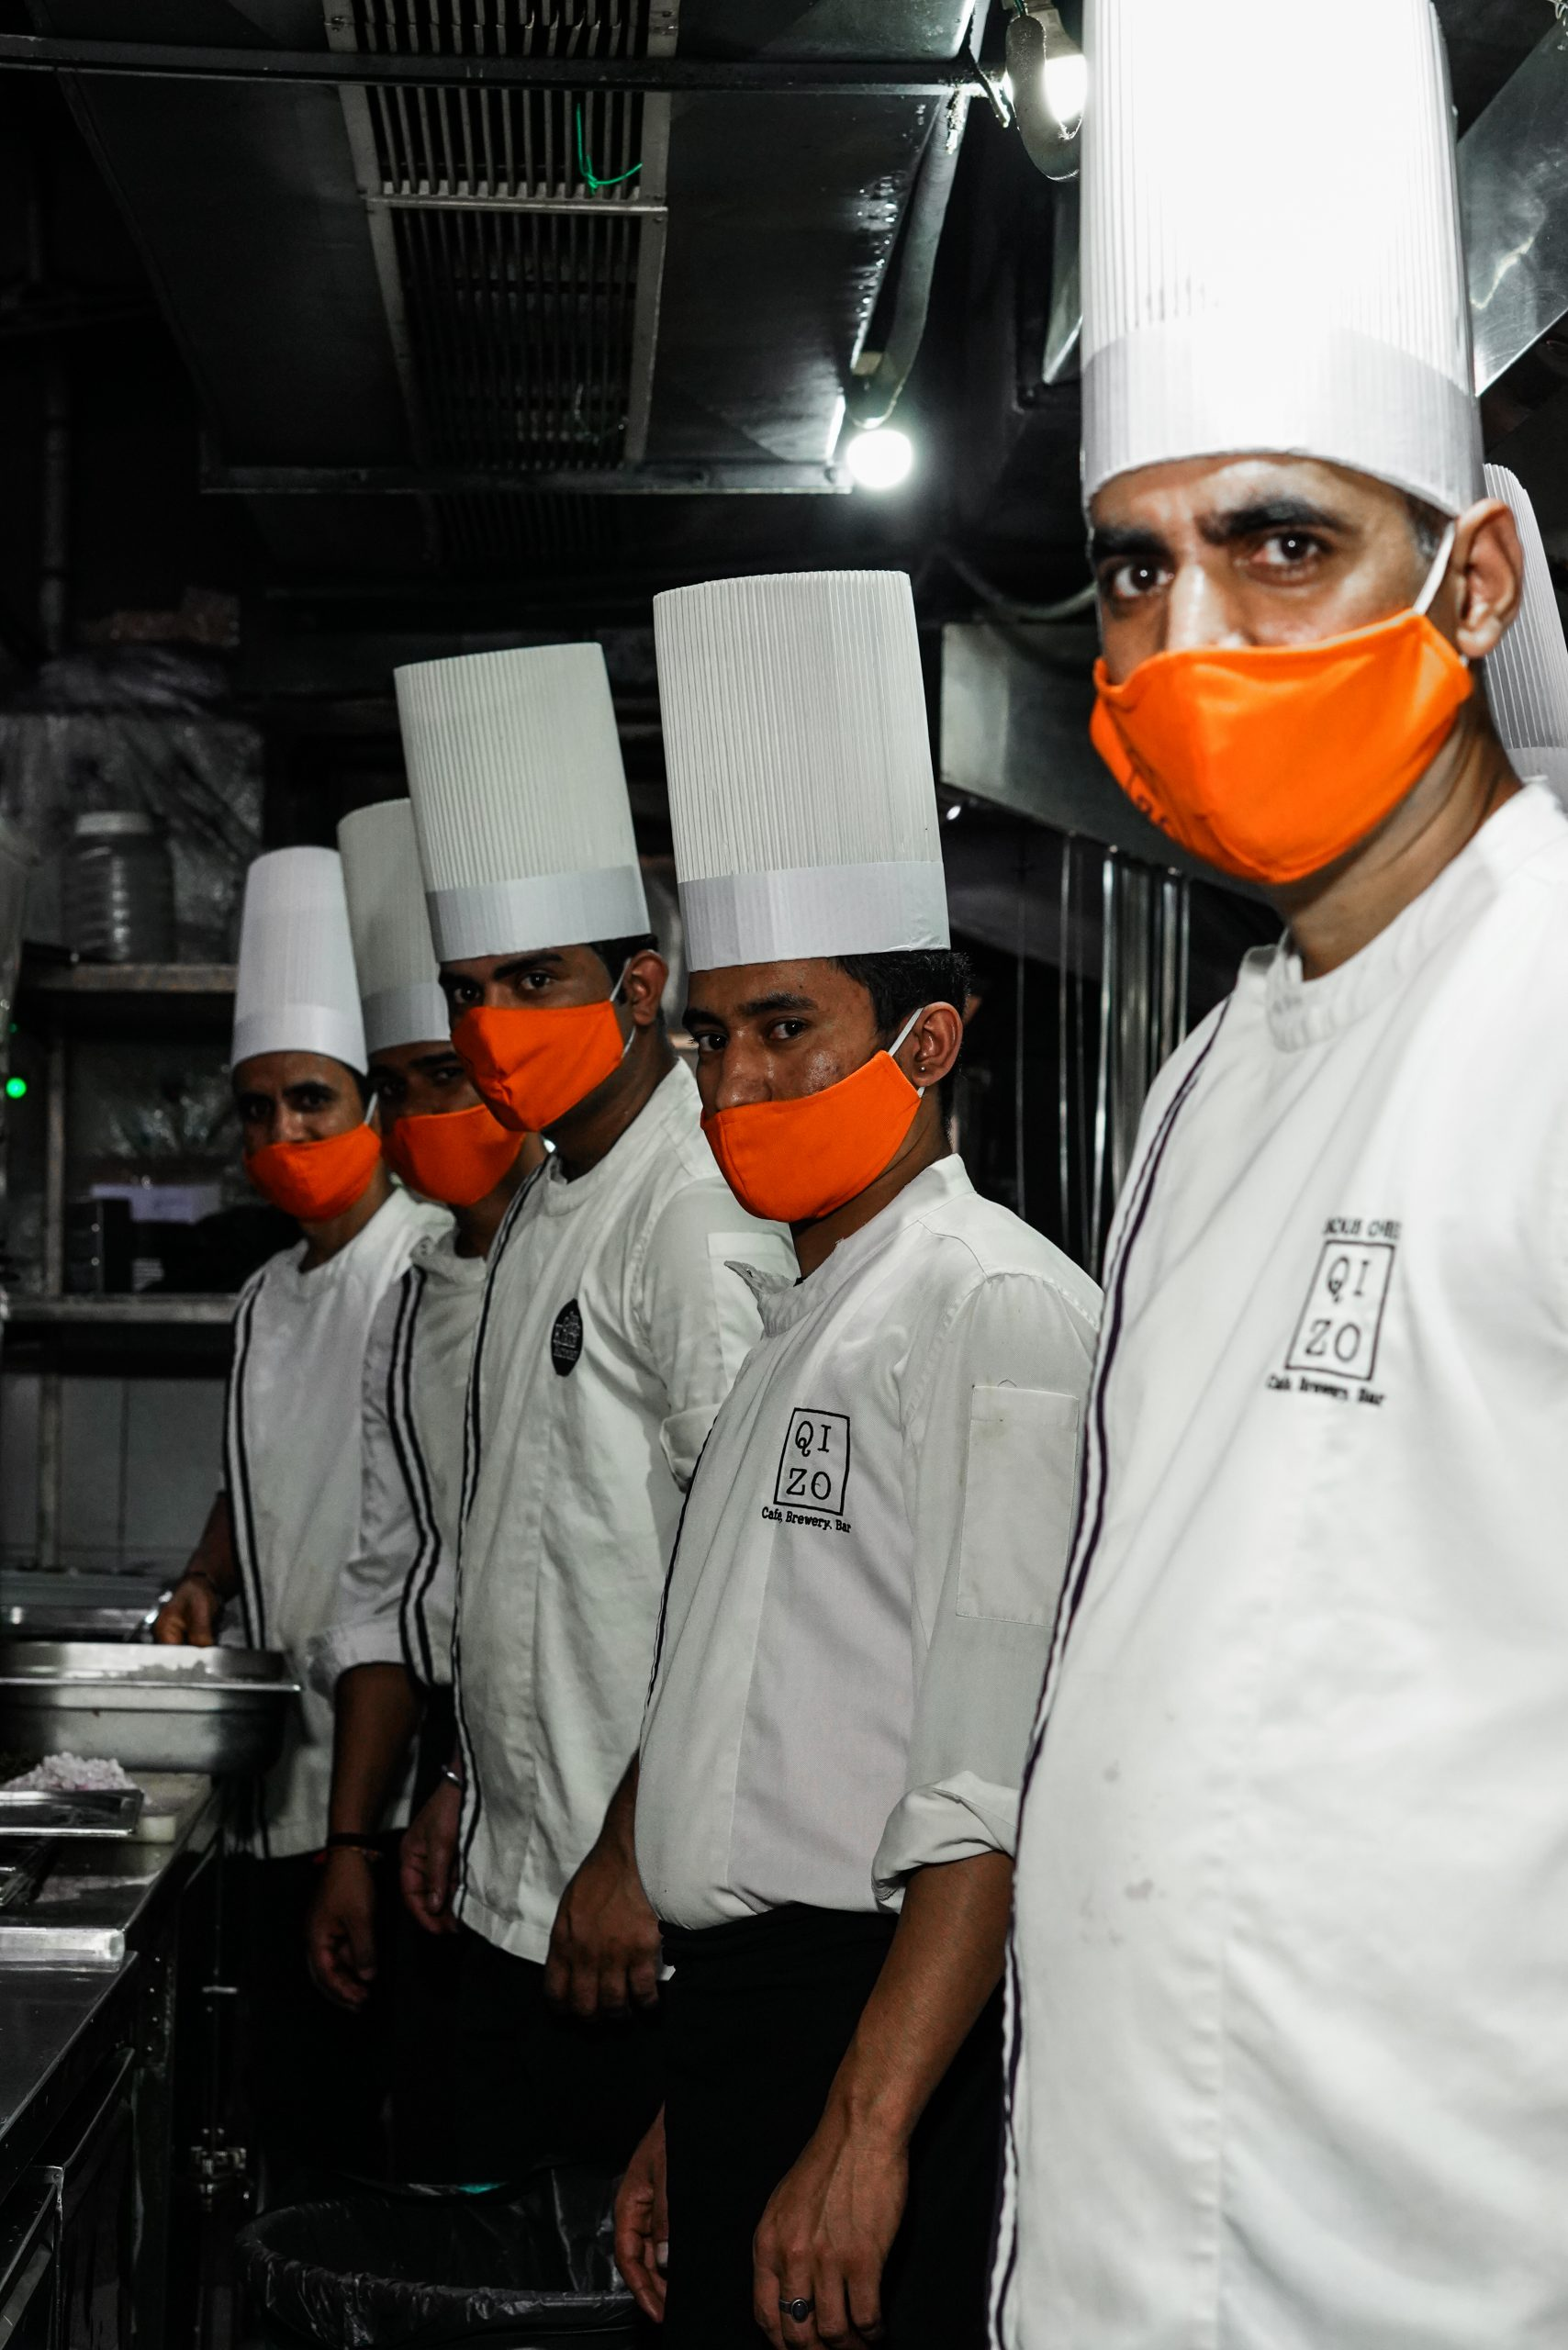 Chefs of an hotel